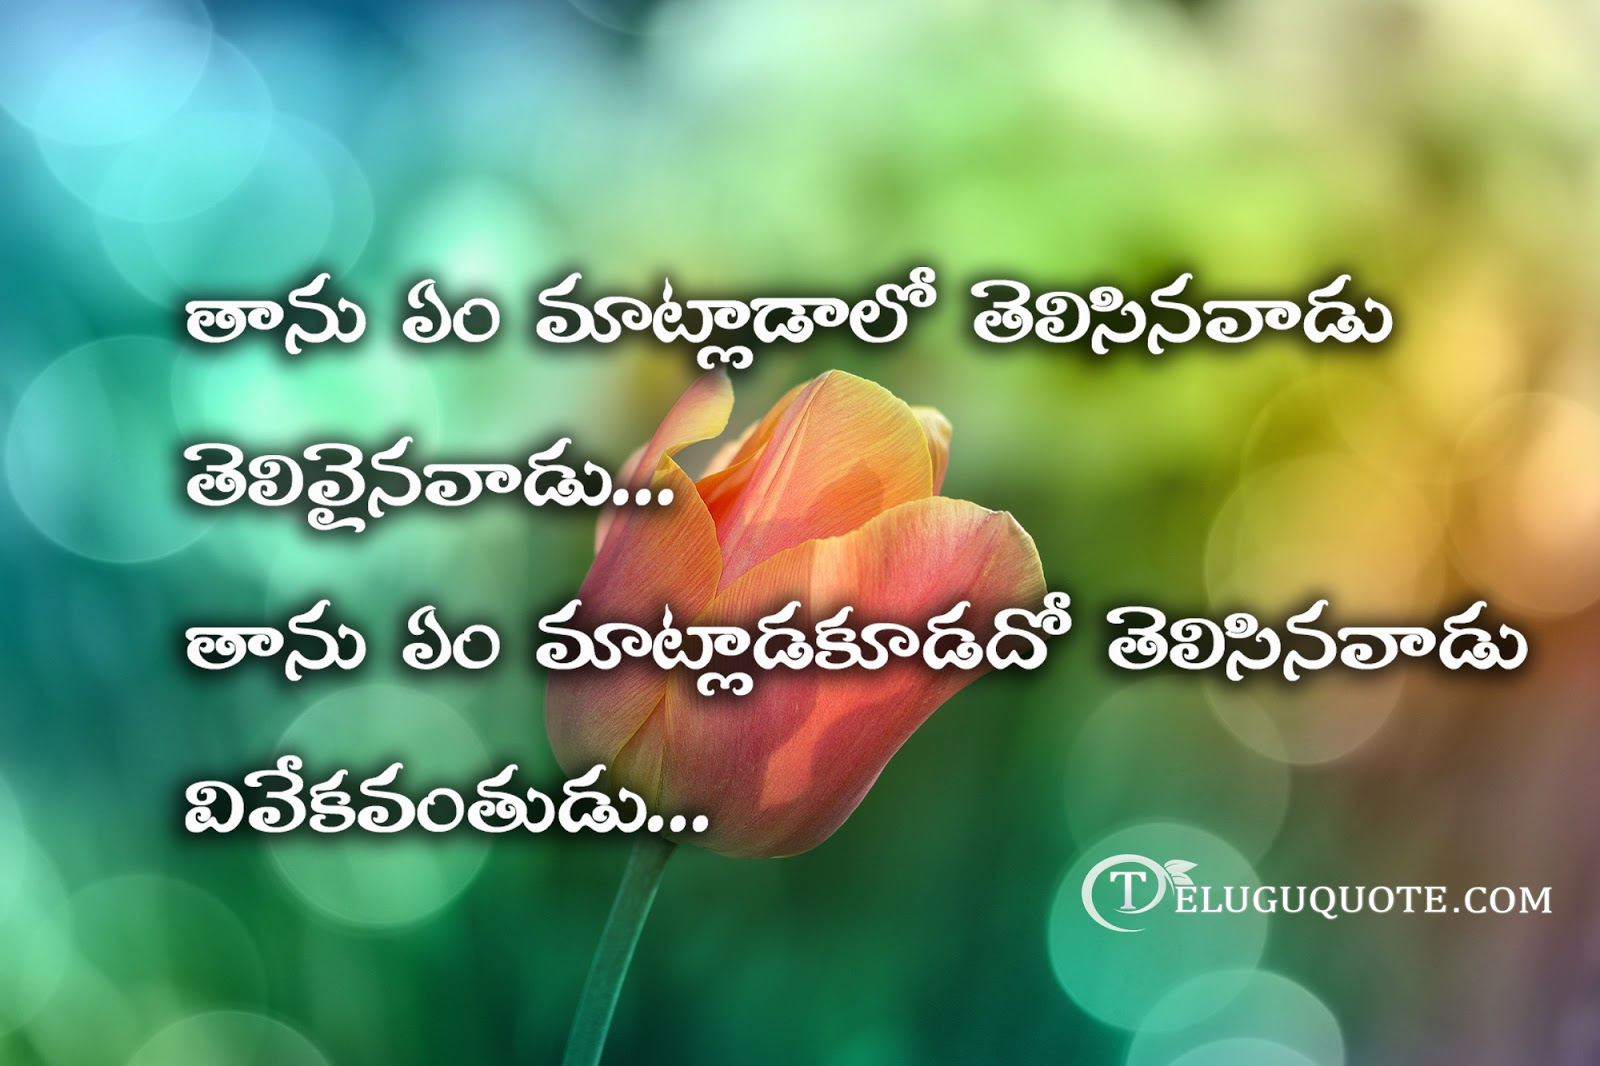 Latest Quotation Images In Telugu Download - love quotes